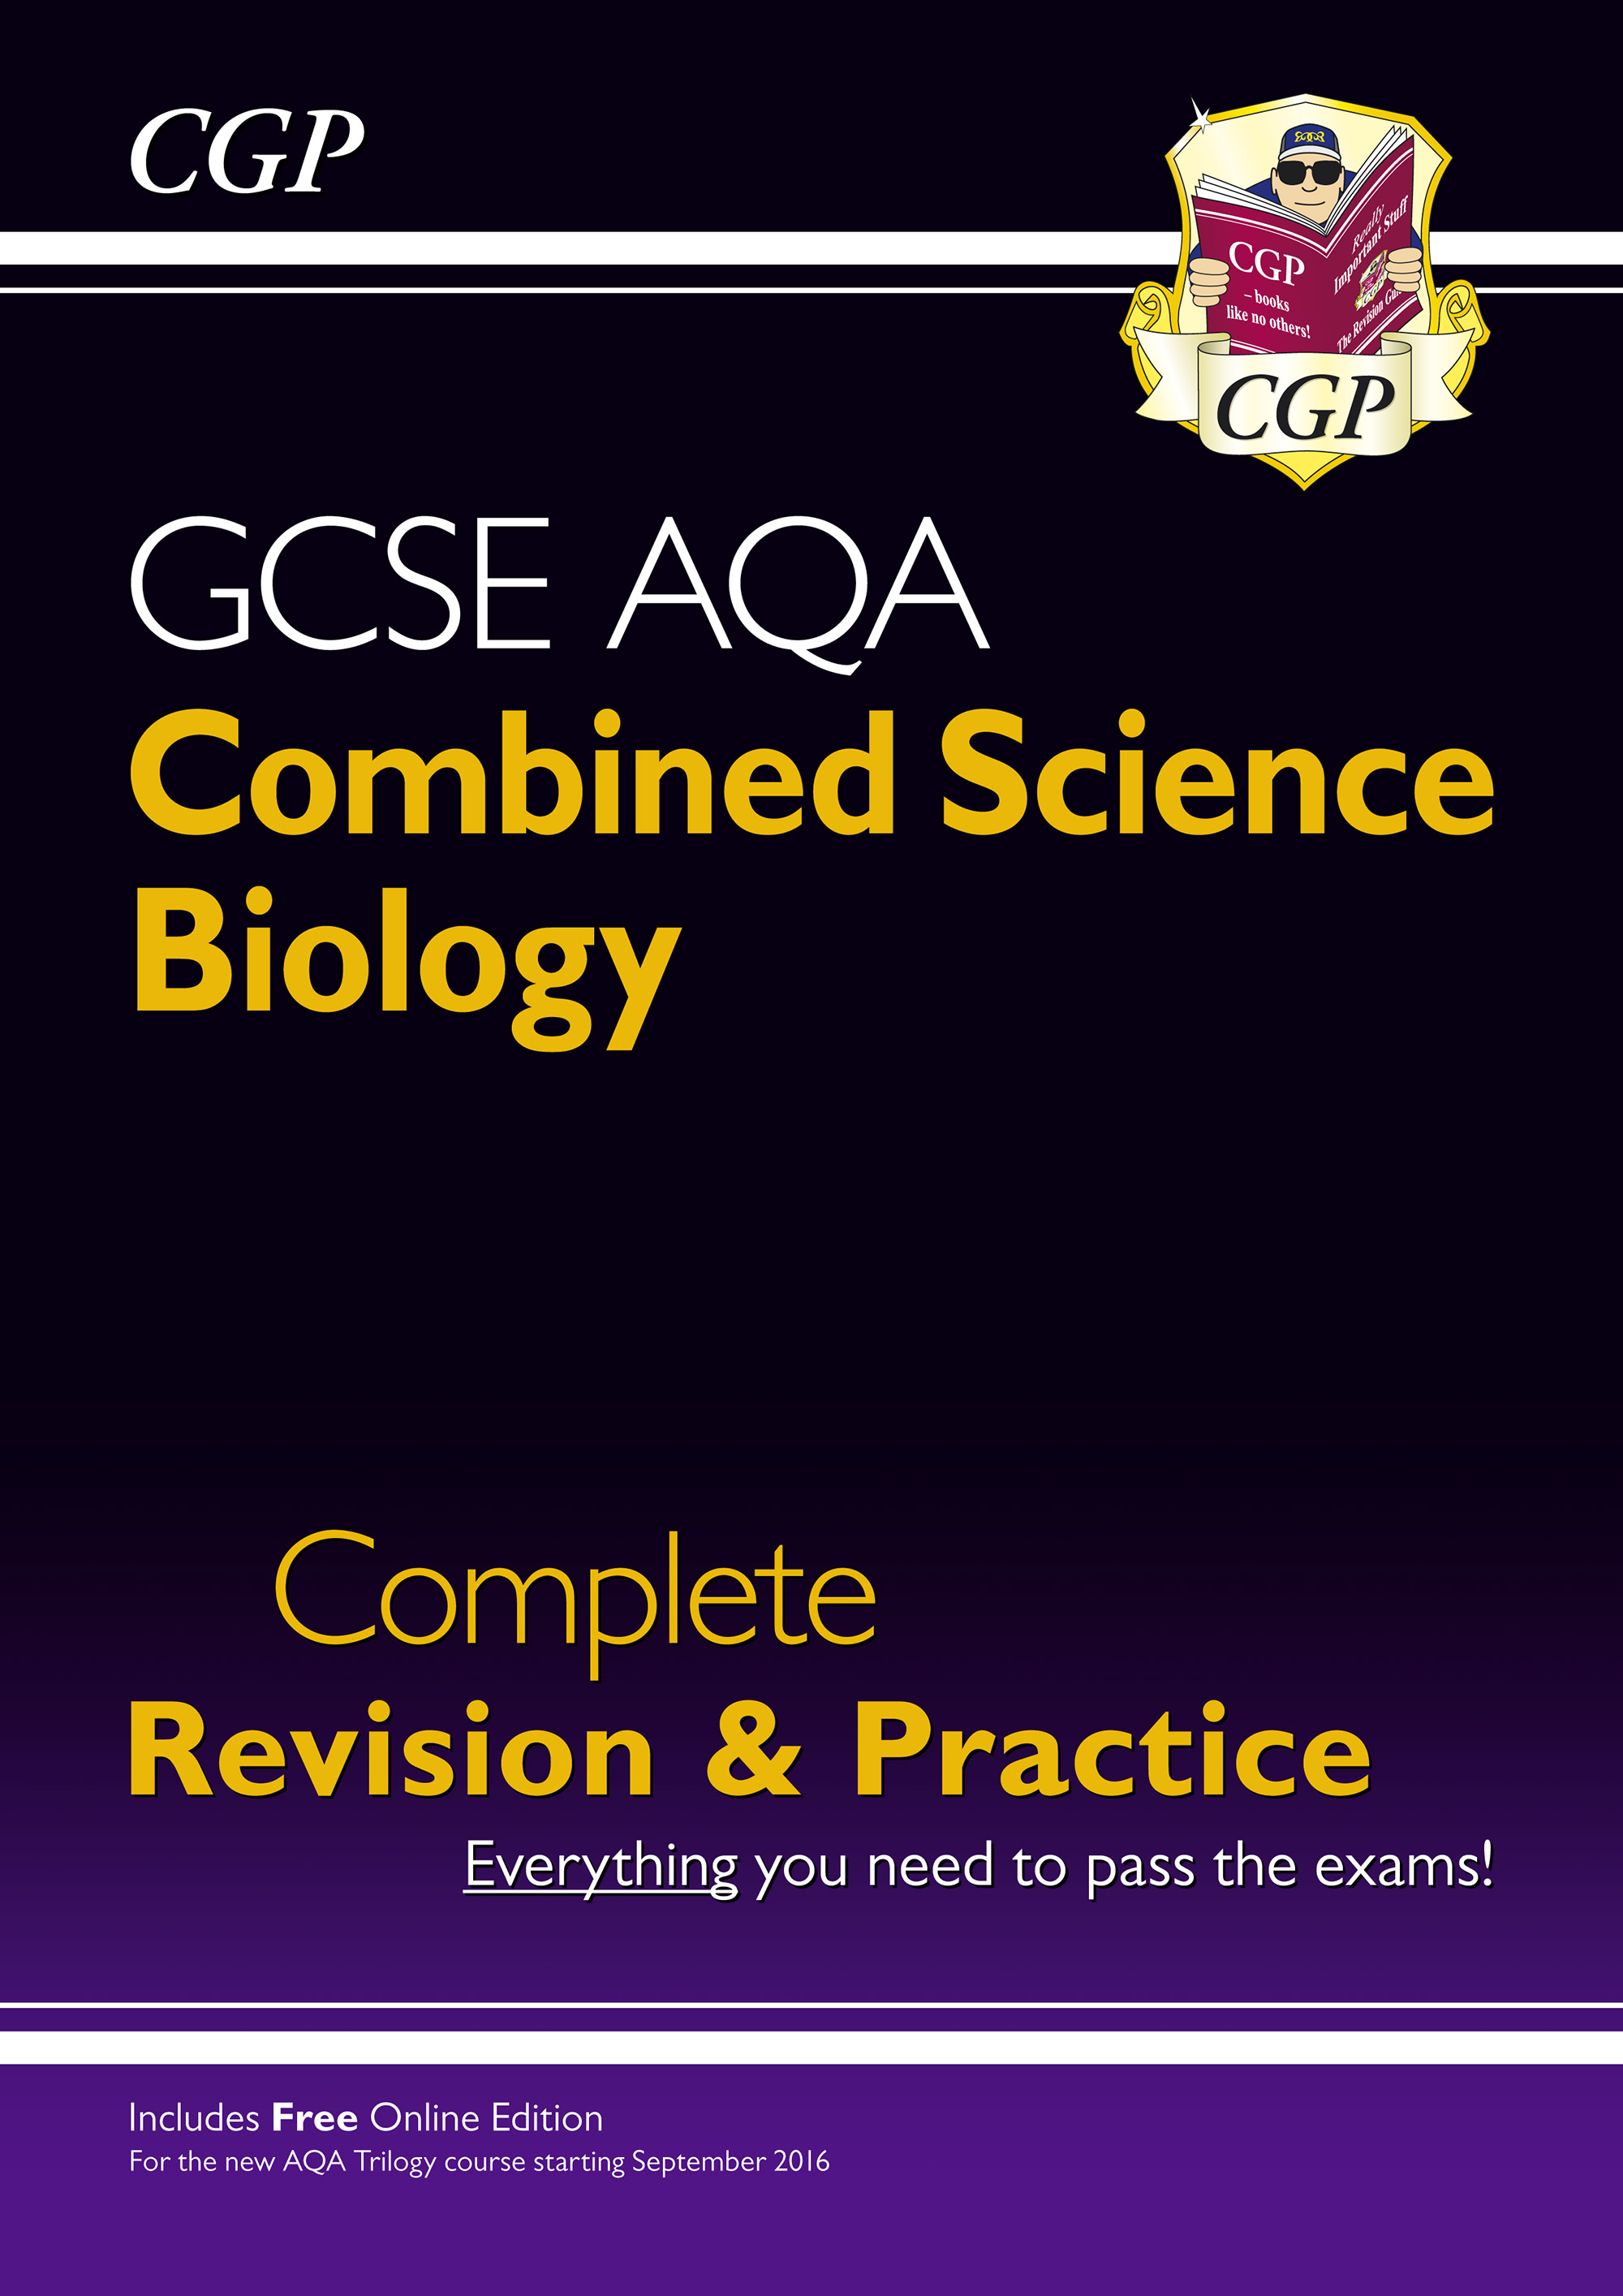 SCBAS41 - New 9-1 GCSE Combined Science: Biology AQA Higher Complete Revision & Practice with Online